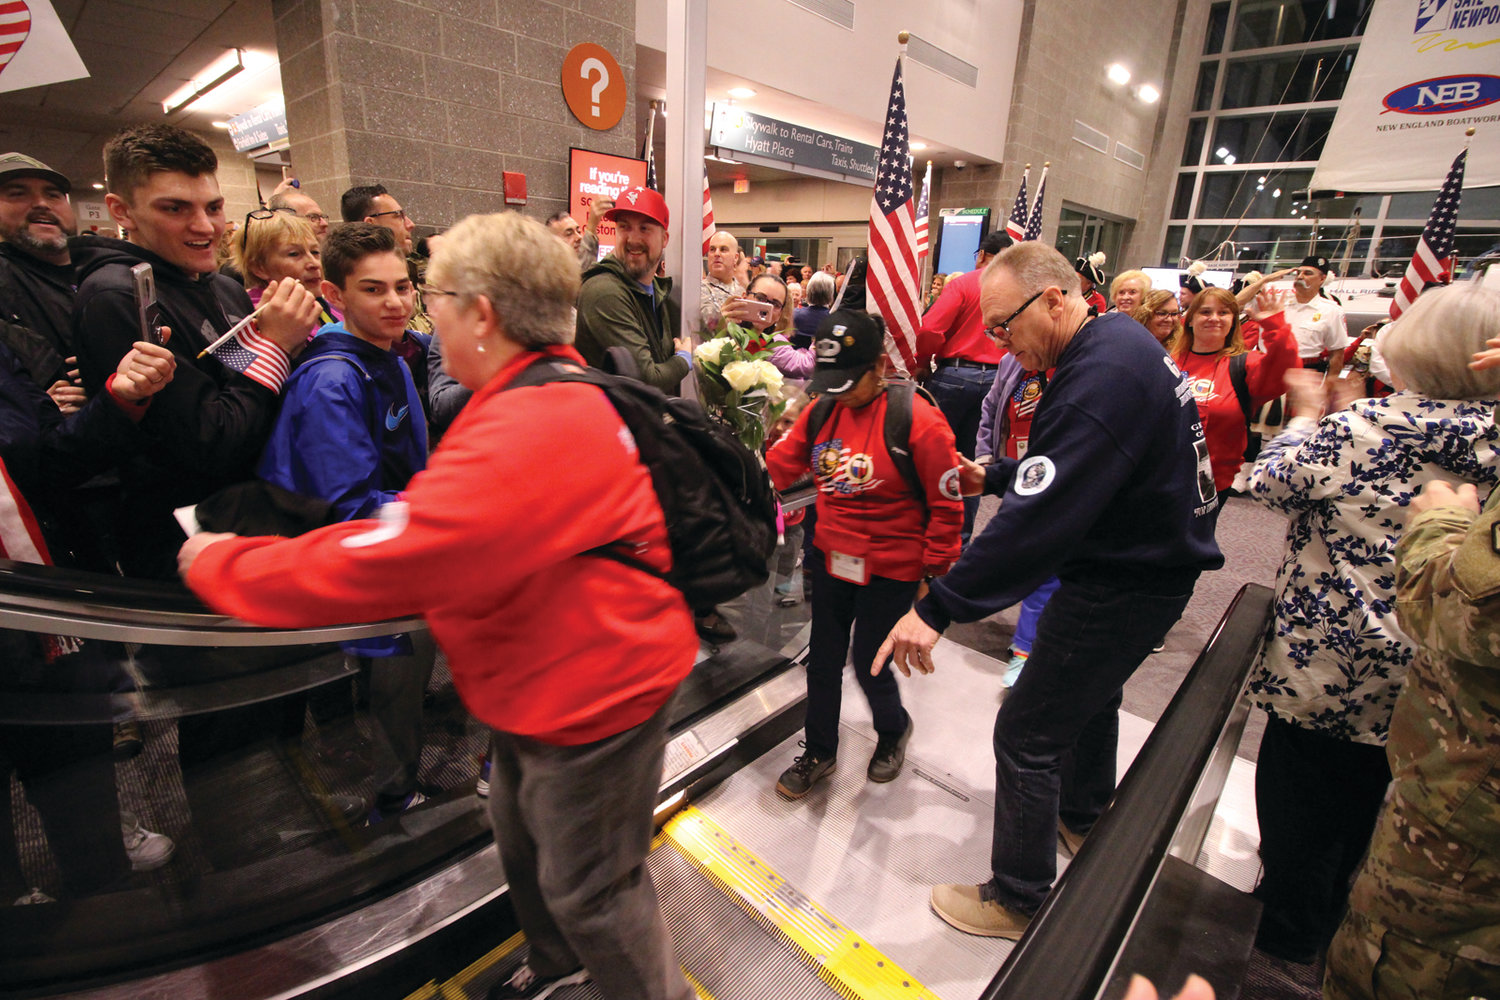 WATCHING EVERY STEP: George Farrell, leader of the Rhode Island Honor Flight, doesn't let up for a moment during the day-long event. Here he helps guide veterans as they arrive to a tumultuous reception at Green Airport.